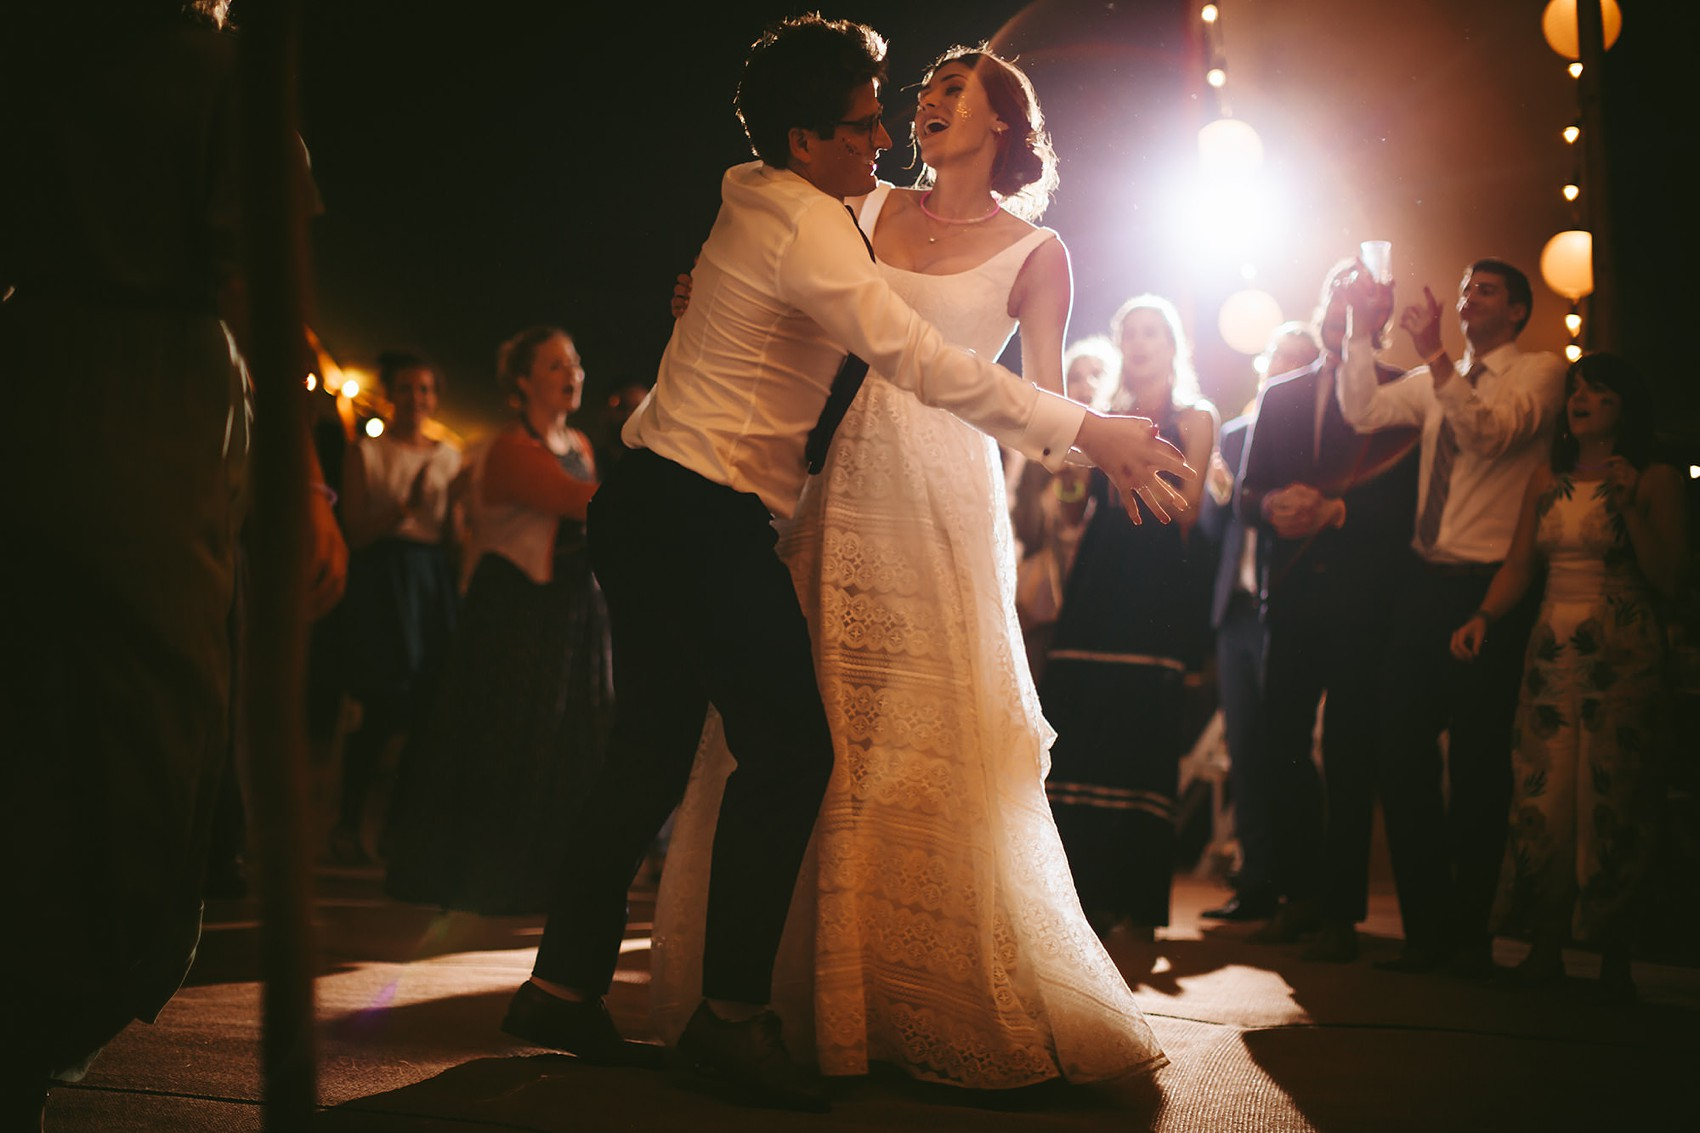 Truvelle bride Bude Hall wedding Durham - A Truvelle Dress + Handmade Veil for an Anglo-American, Festival Inspired Wedding in Northumberland